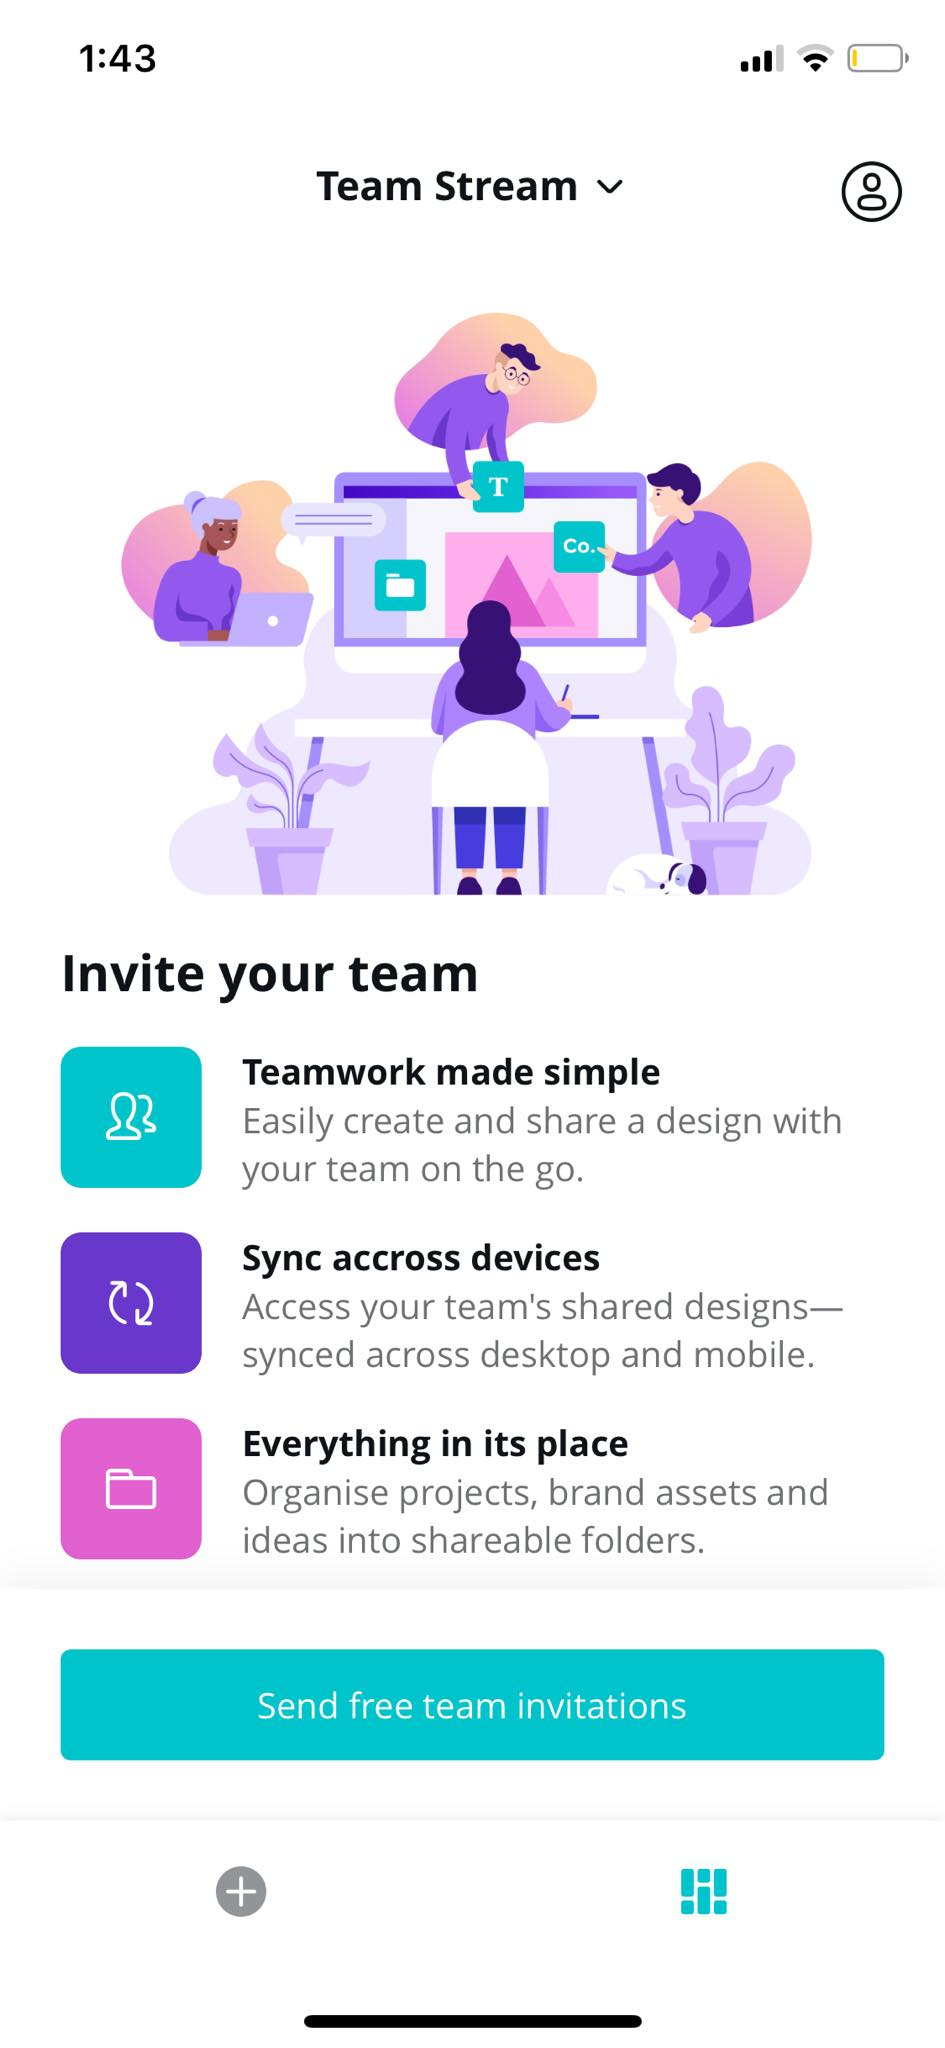 Team Stream on iOS by Canva